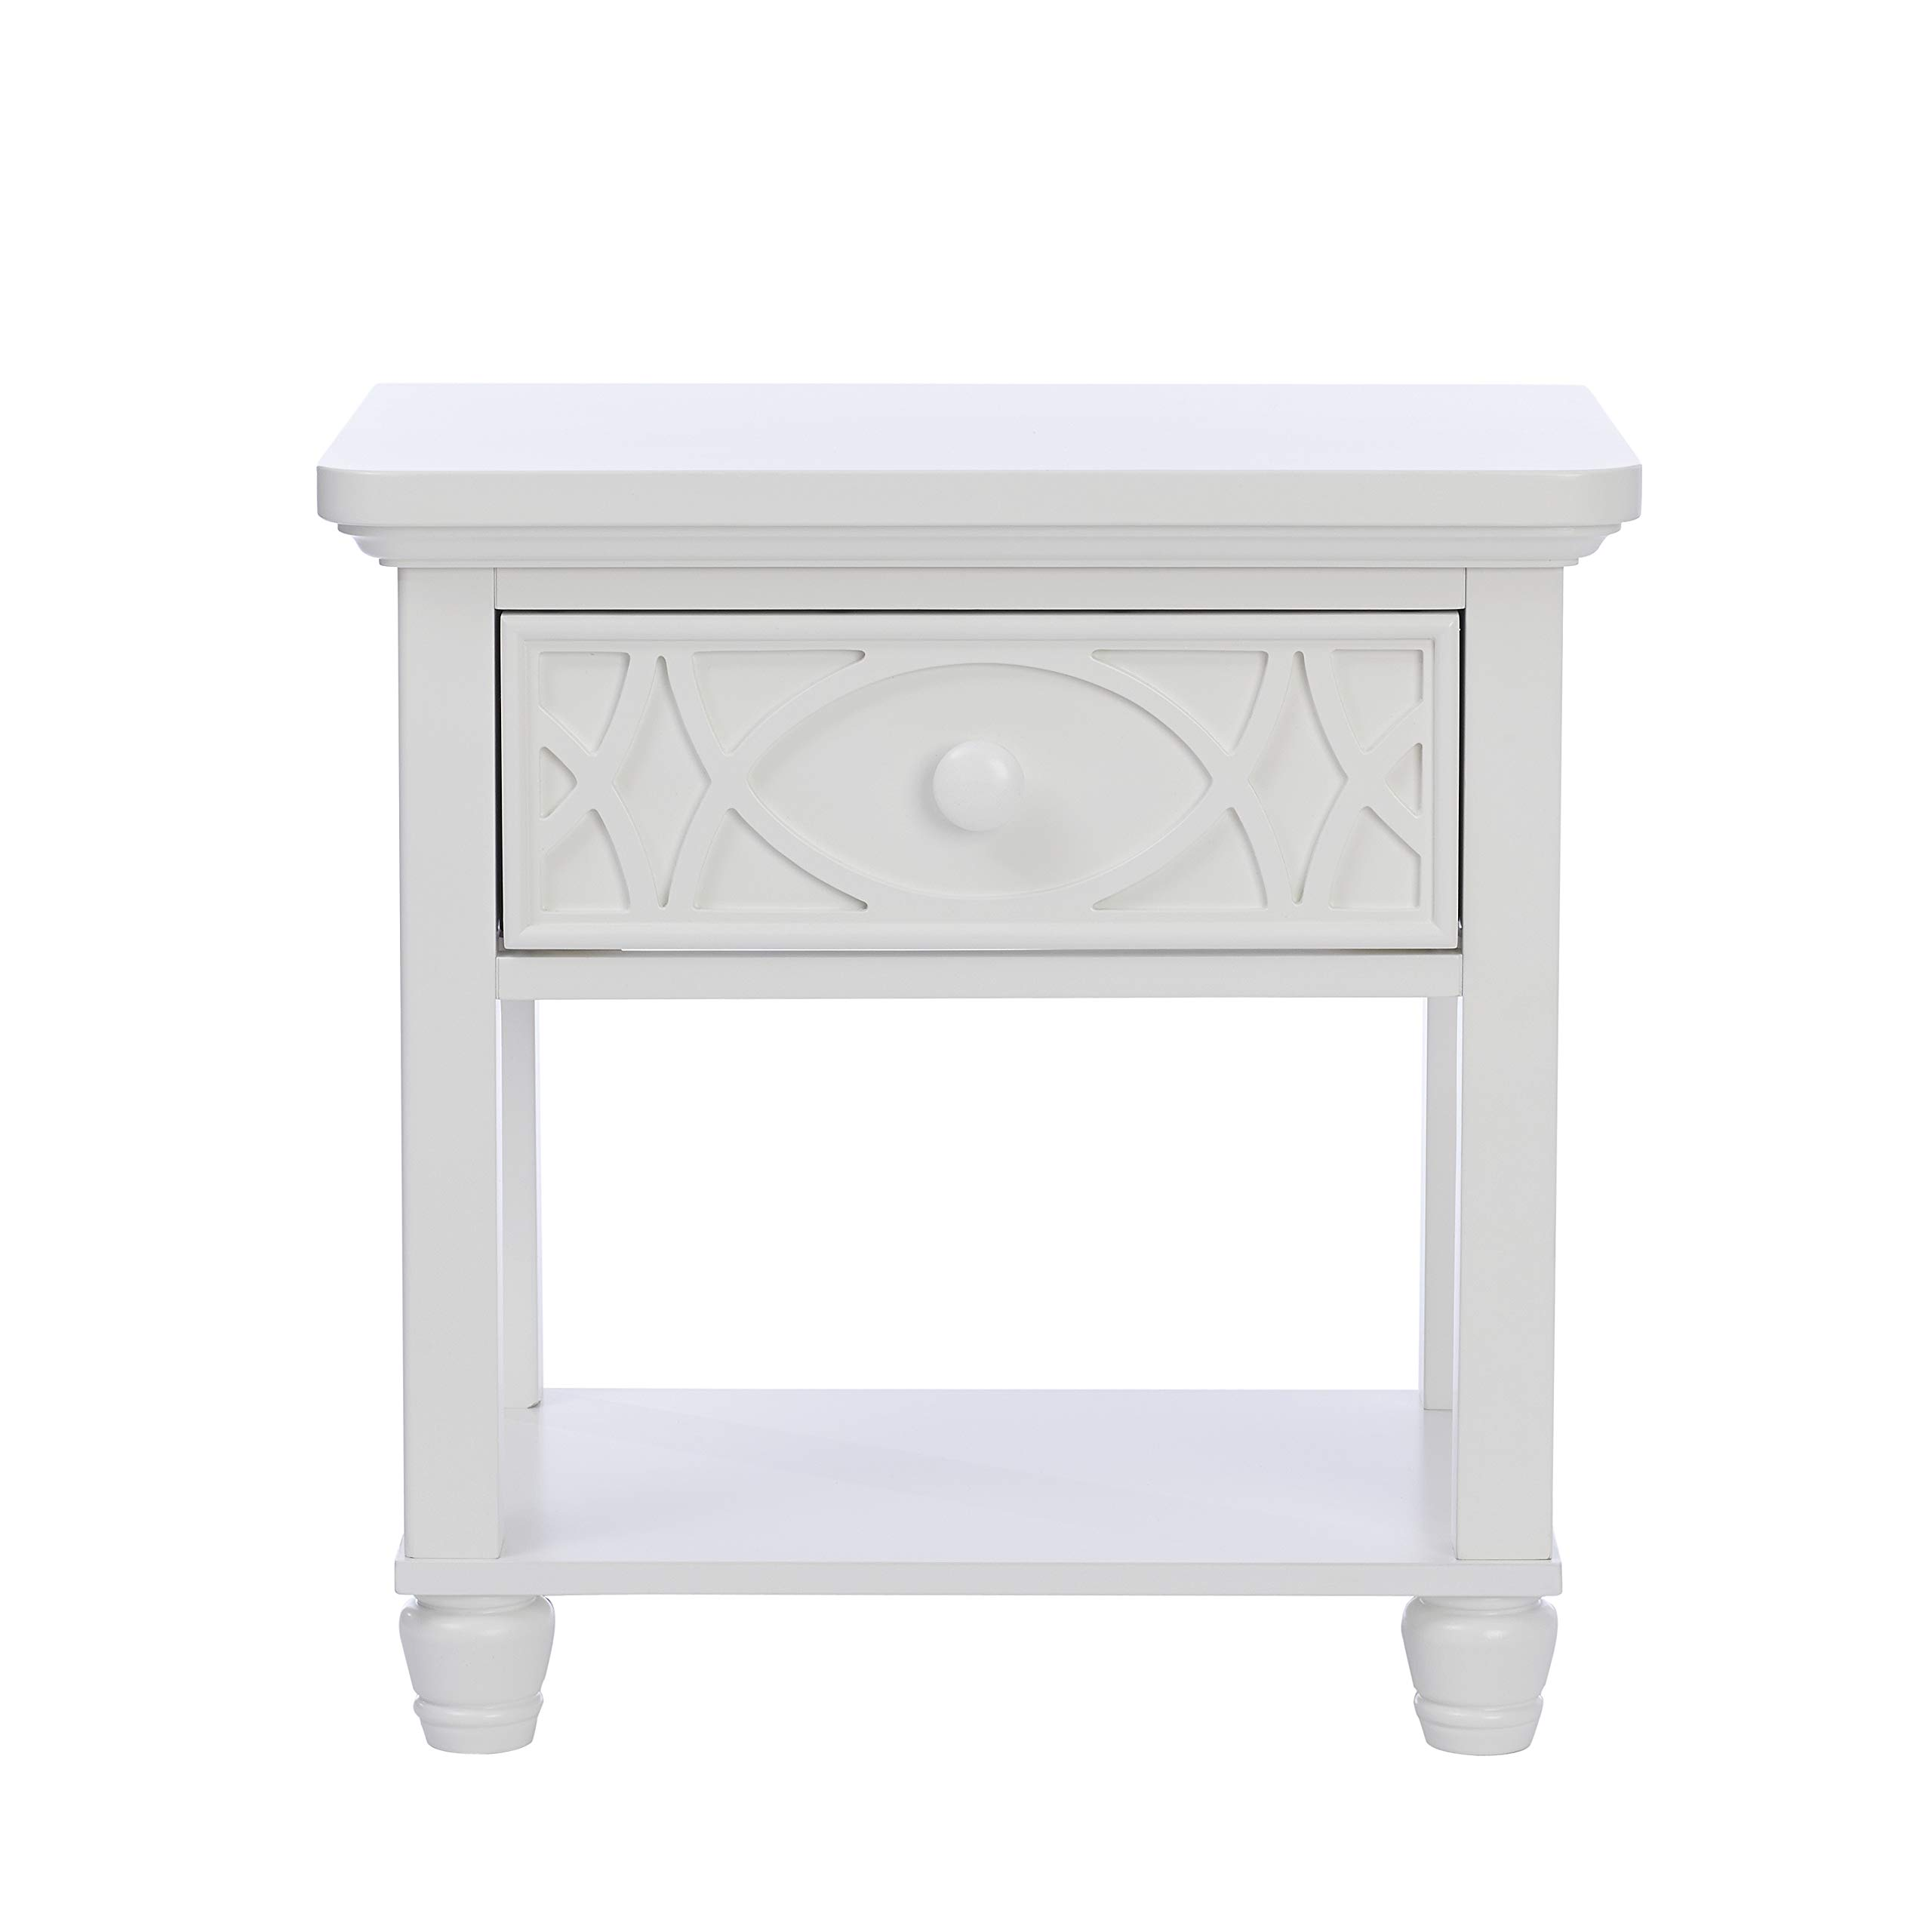 Baby Cache Haven Hill, 1 Drawer Nightstand, White Lace by Baby Cache